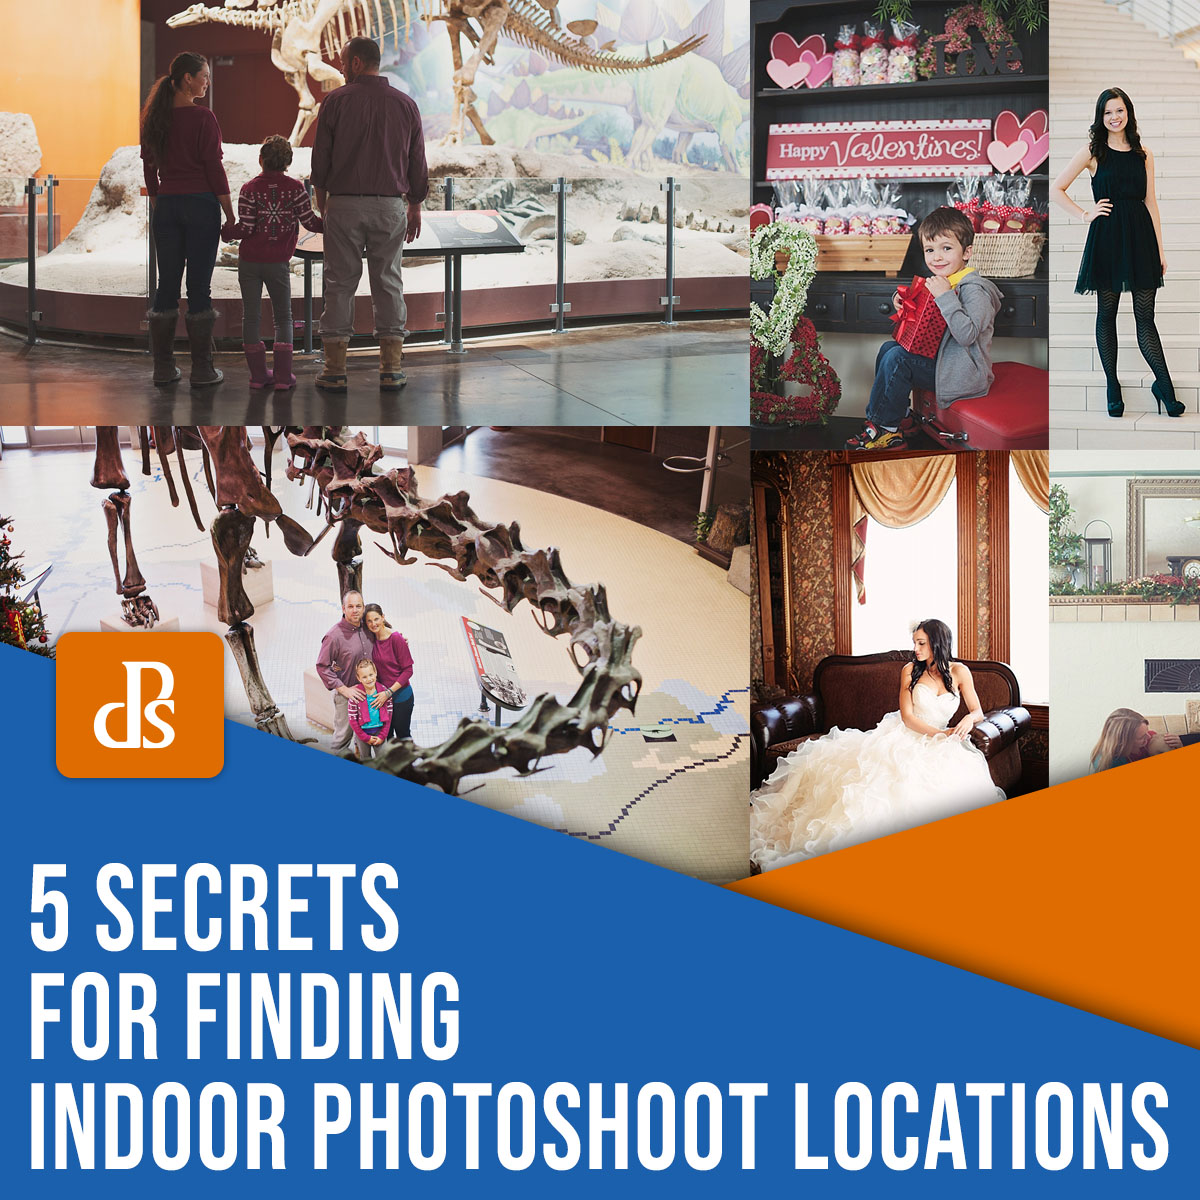 secrets for finding indoor photoshoot locations